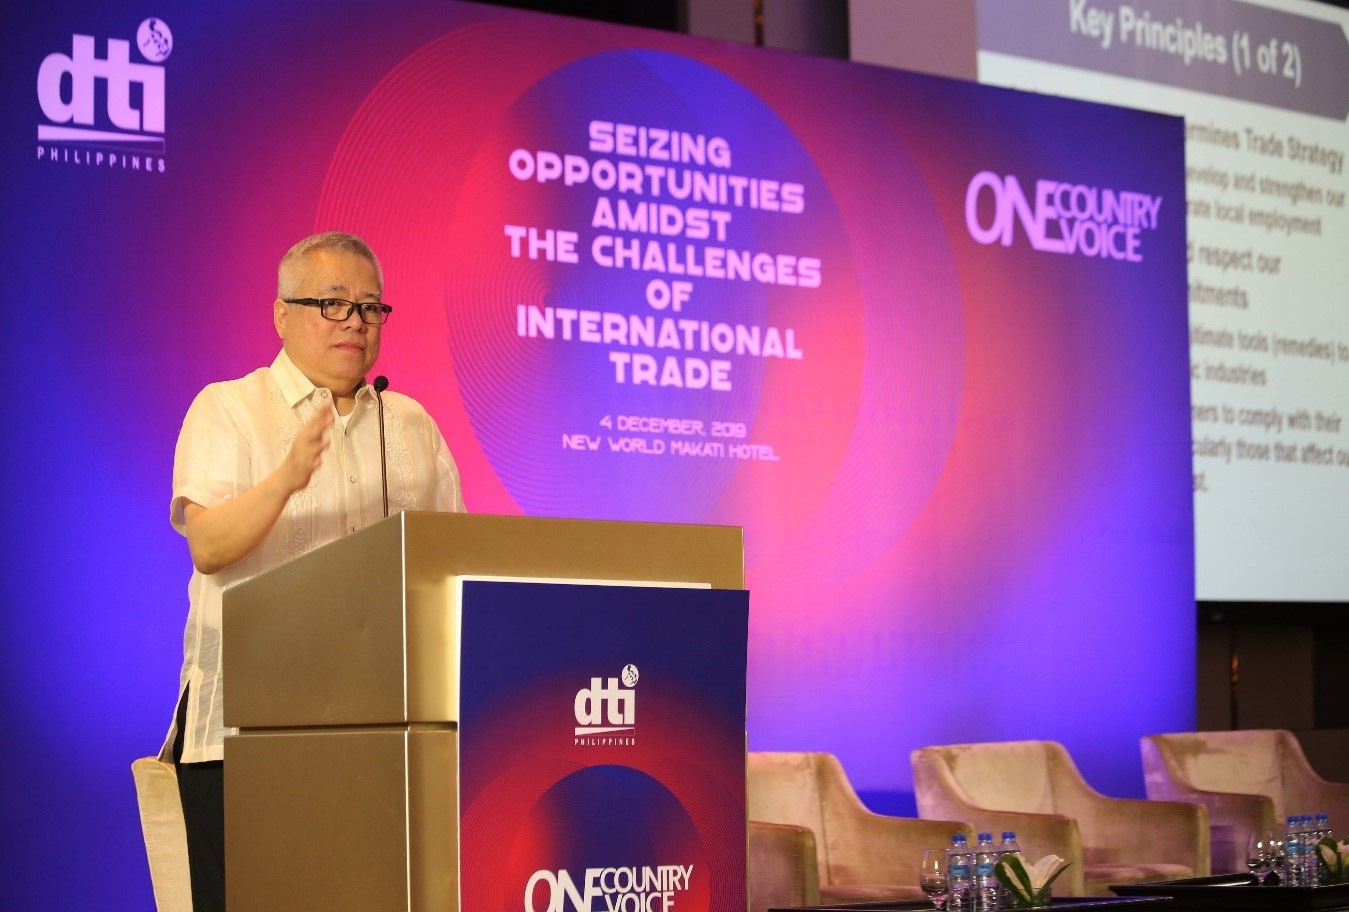 PH sets to seize opportunities, face challenges in international trade scene